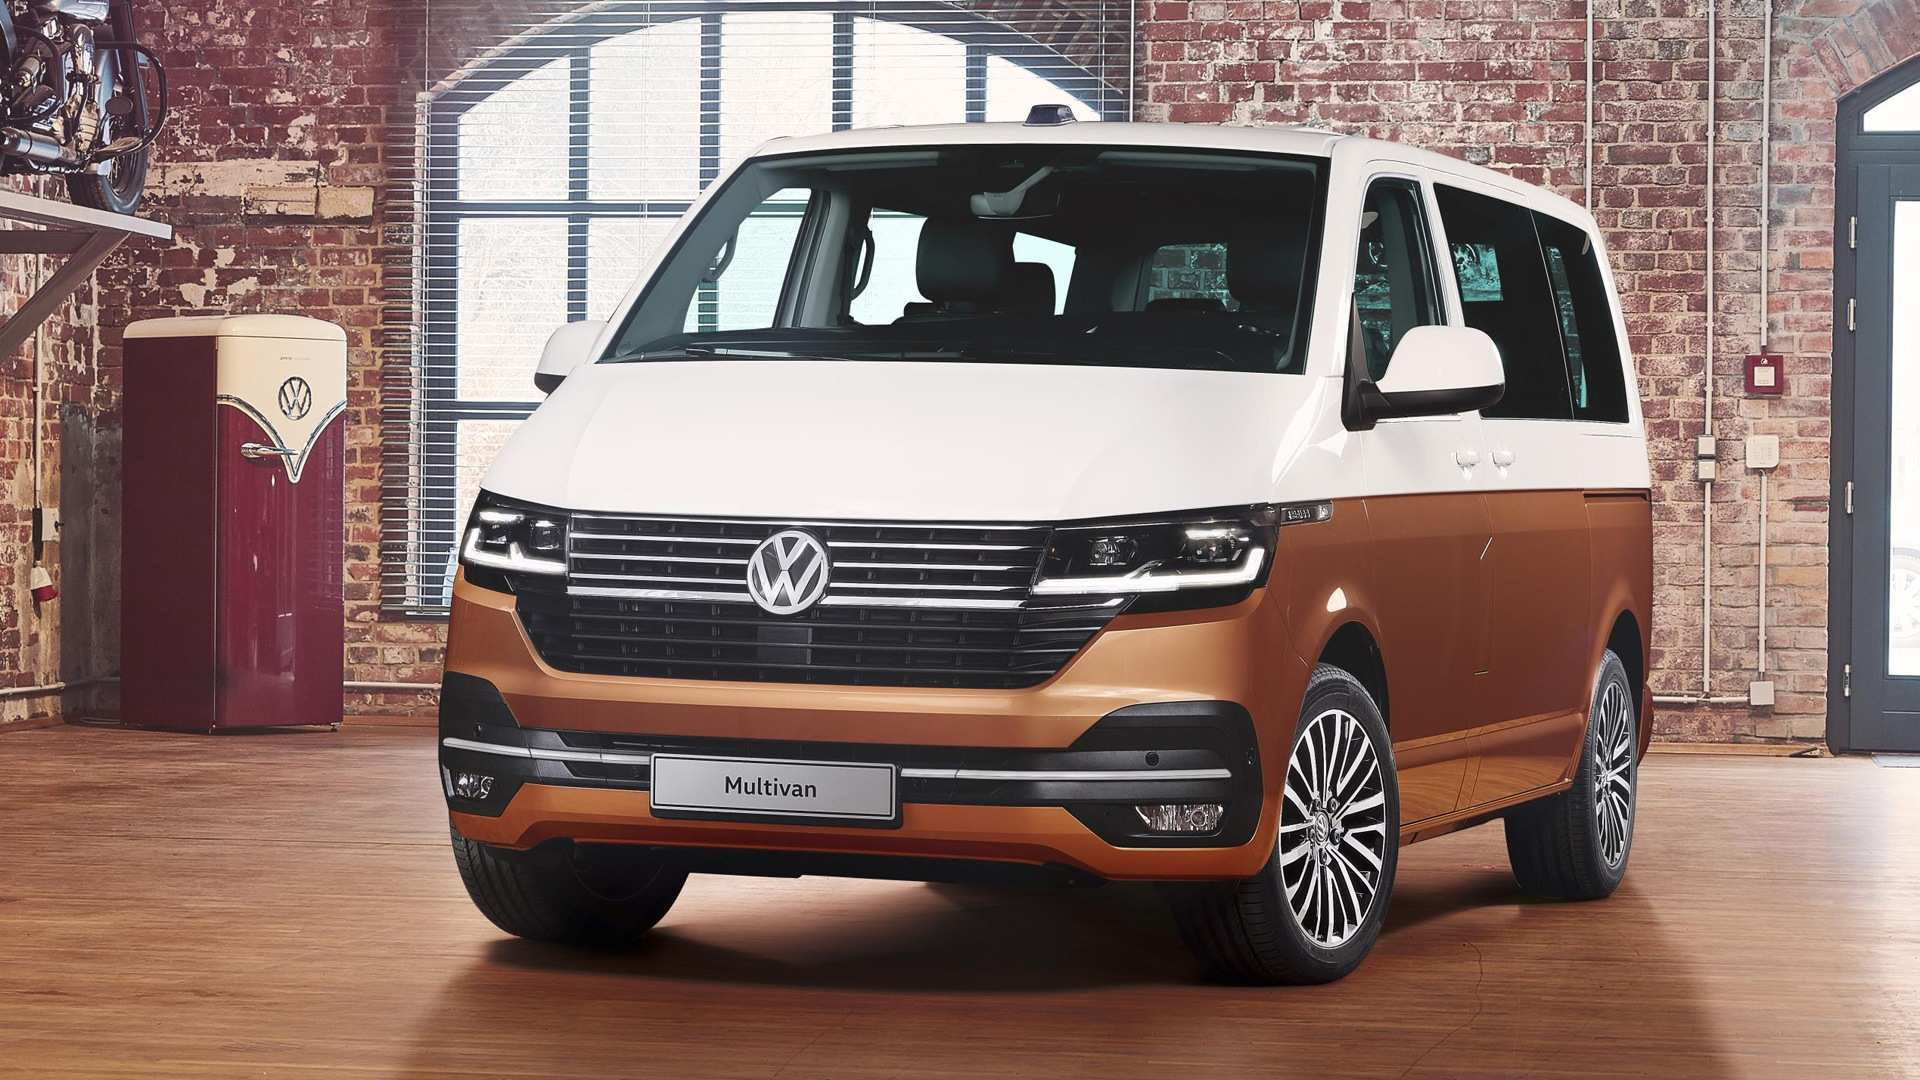 39 Great Volkswagen Transporter 2020 Picture for Volkswagen Transporter 2020